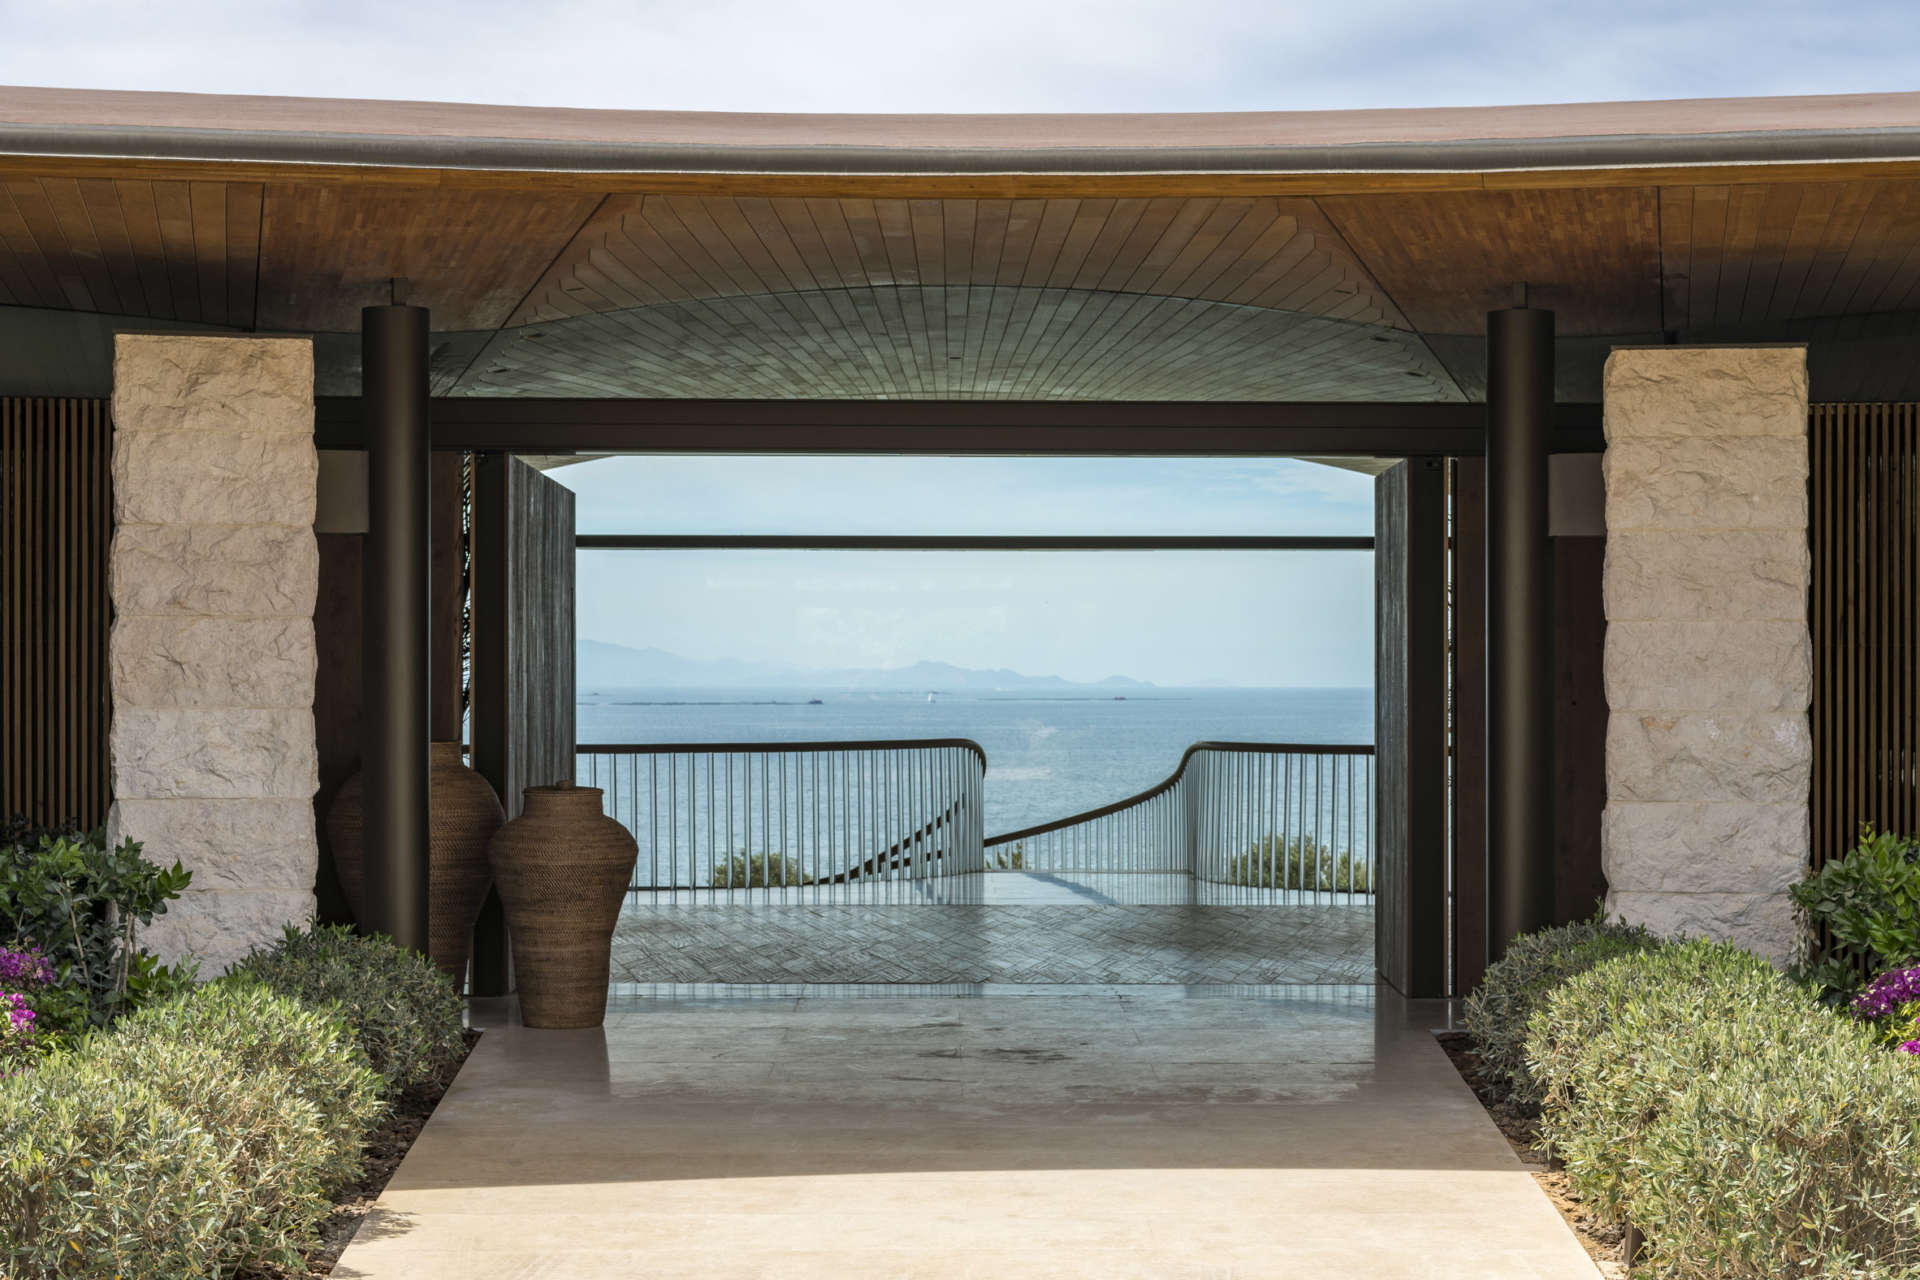 """Photos by <a href=""""https://www.fosterandpartners.com/studio/people/partners/nigel-young/"""">Nigel Young/Foster + Partners</a>"""